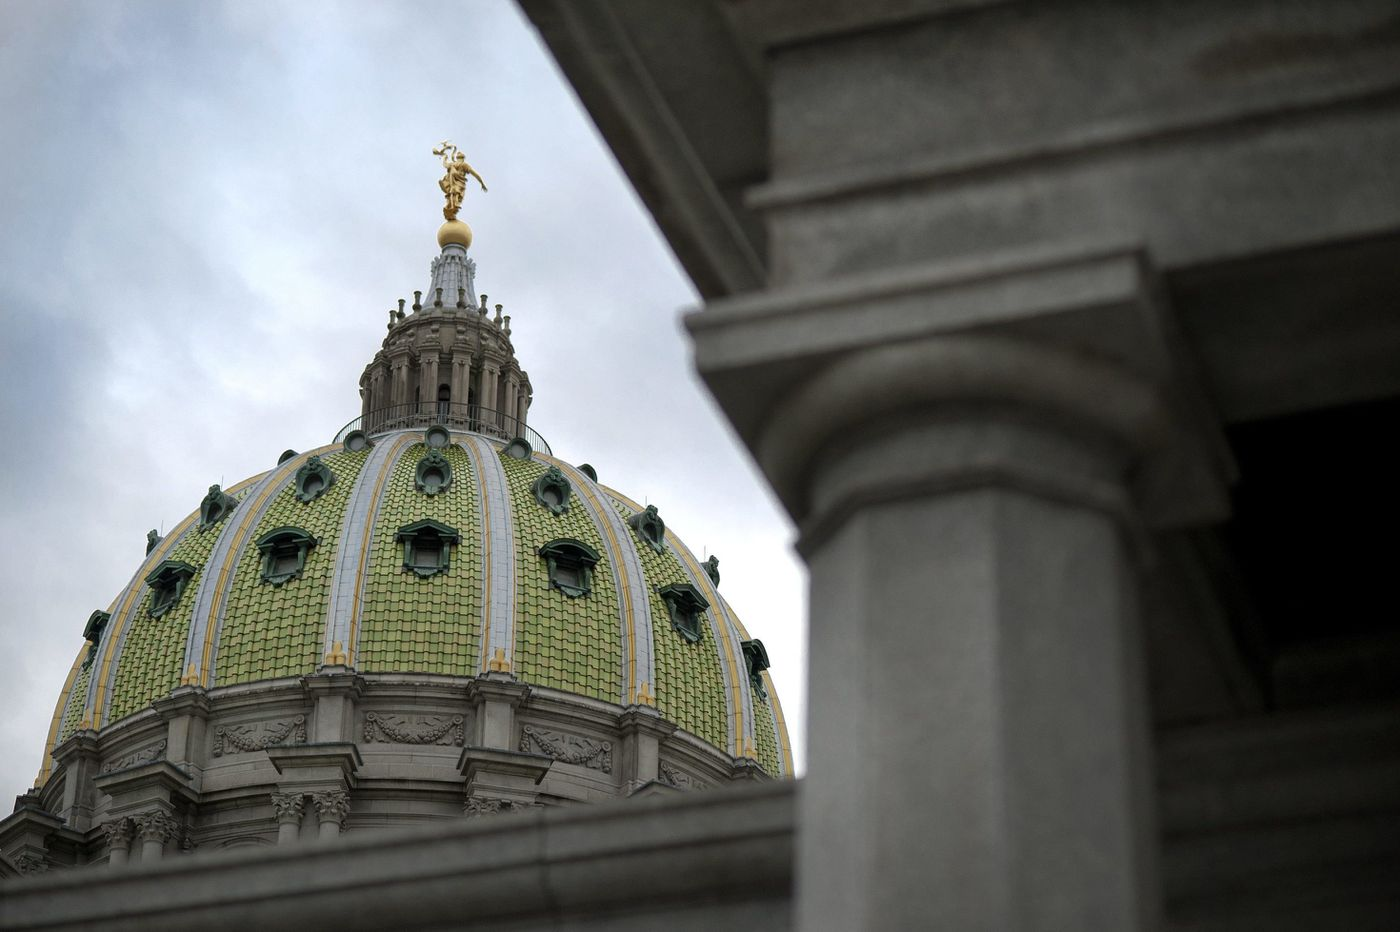 In Pa., a flurry of school safety bills. Action? Not much yet